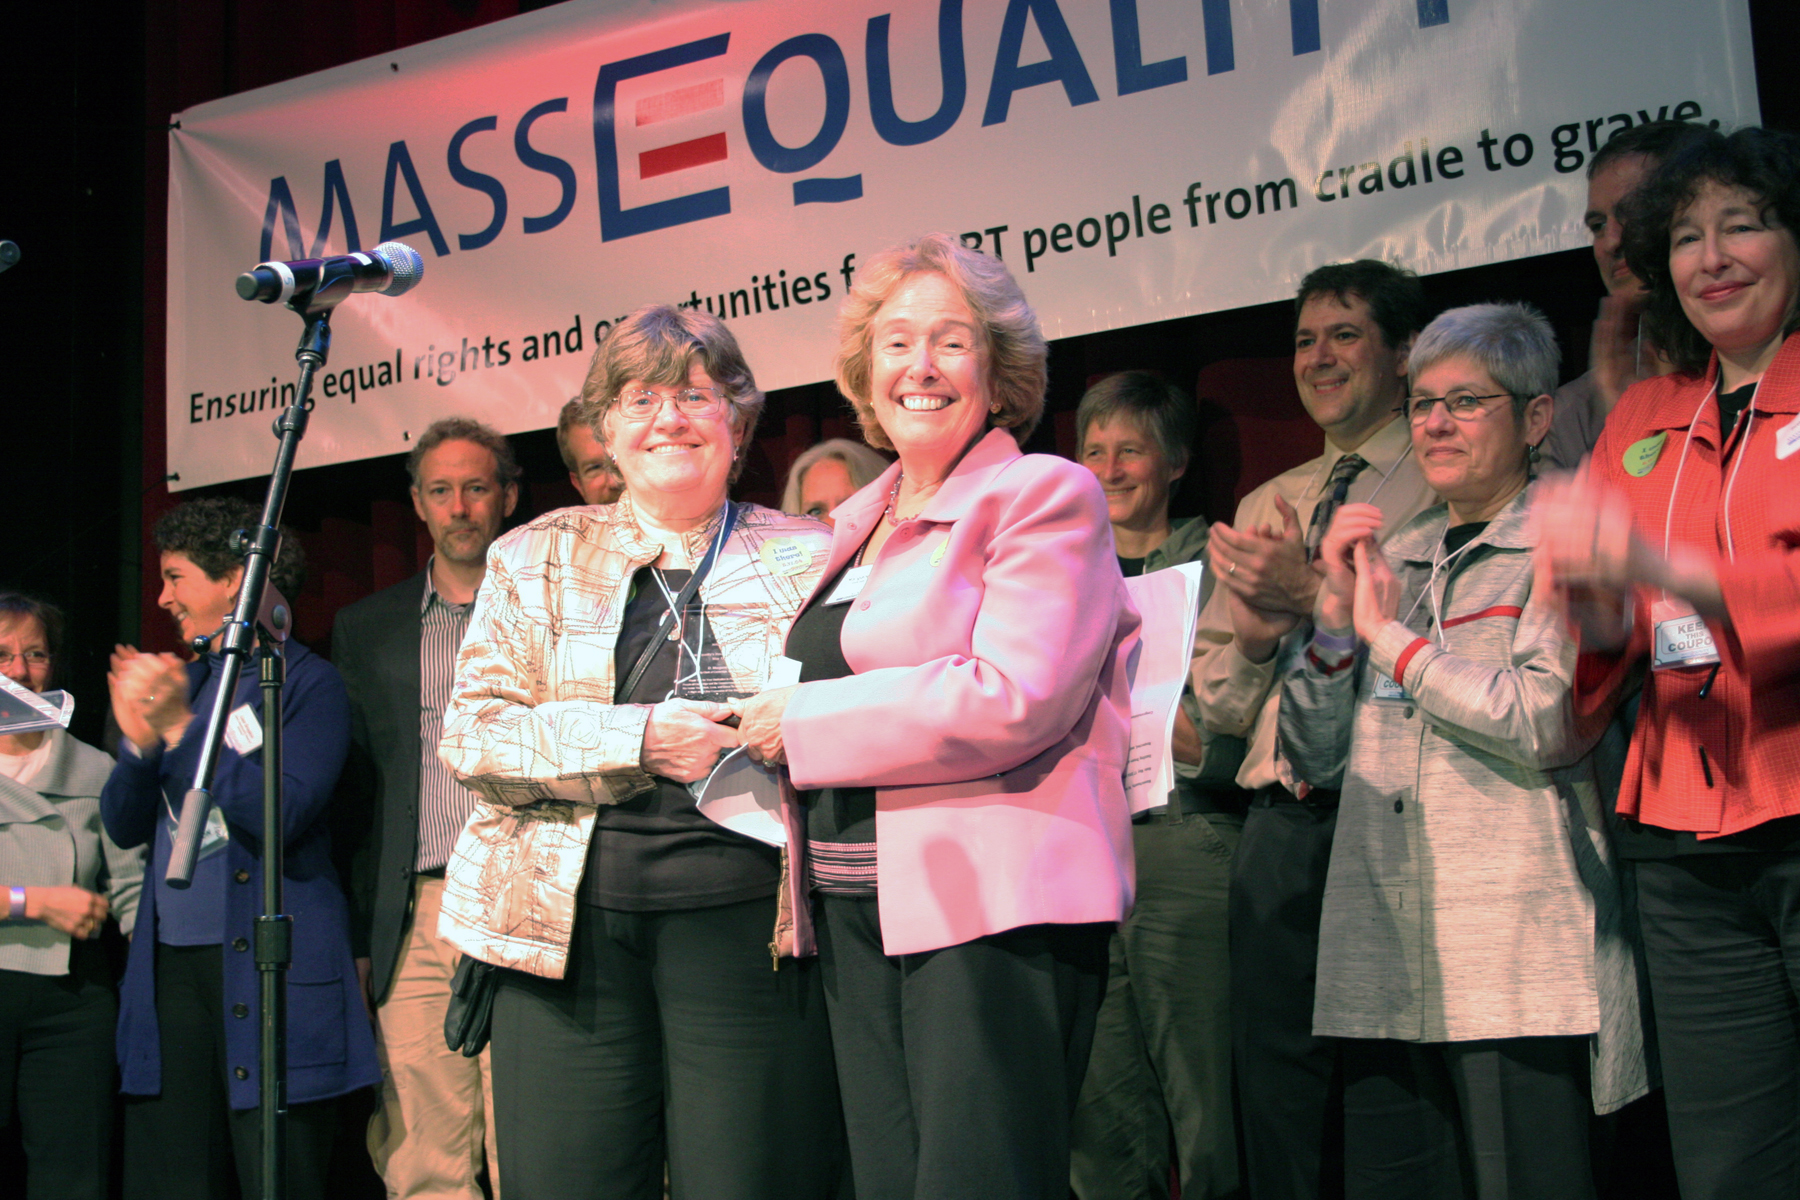 Two women stand on stage holding plaque together in front of MassEquality banner and clapping listeners.